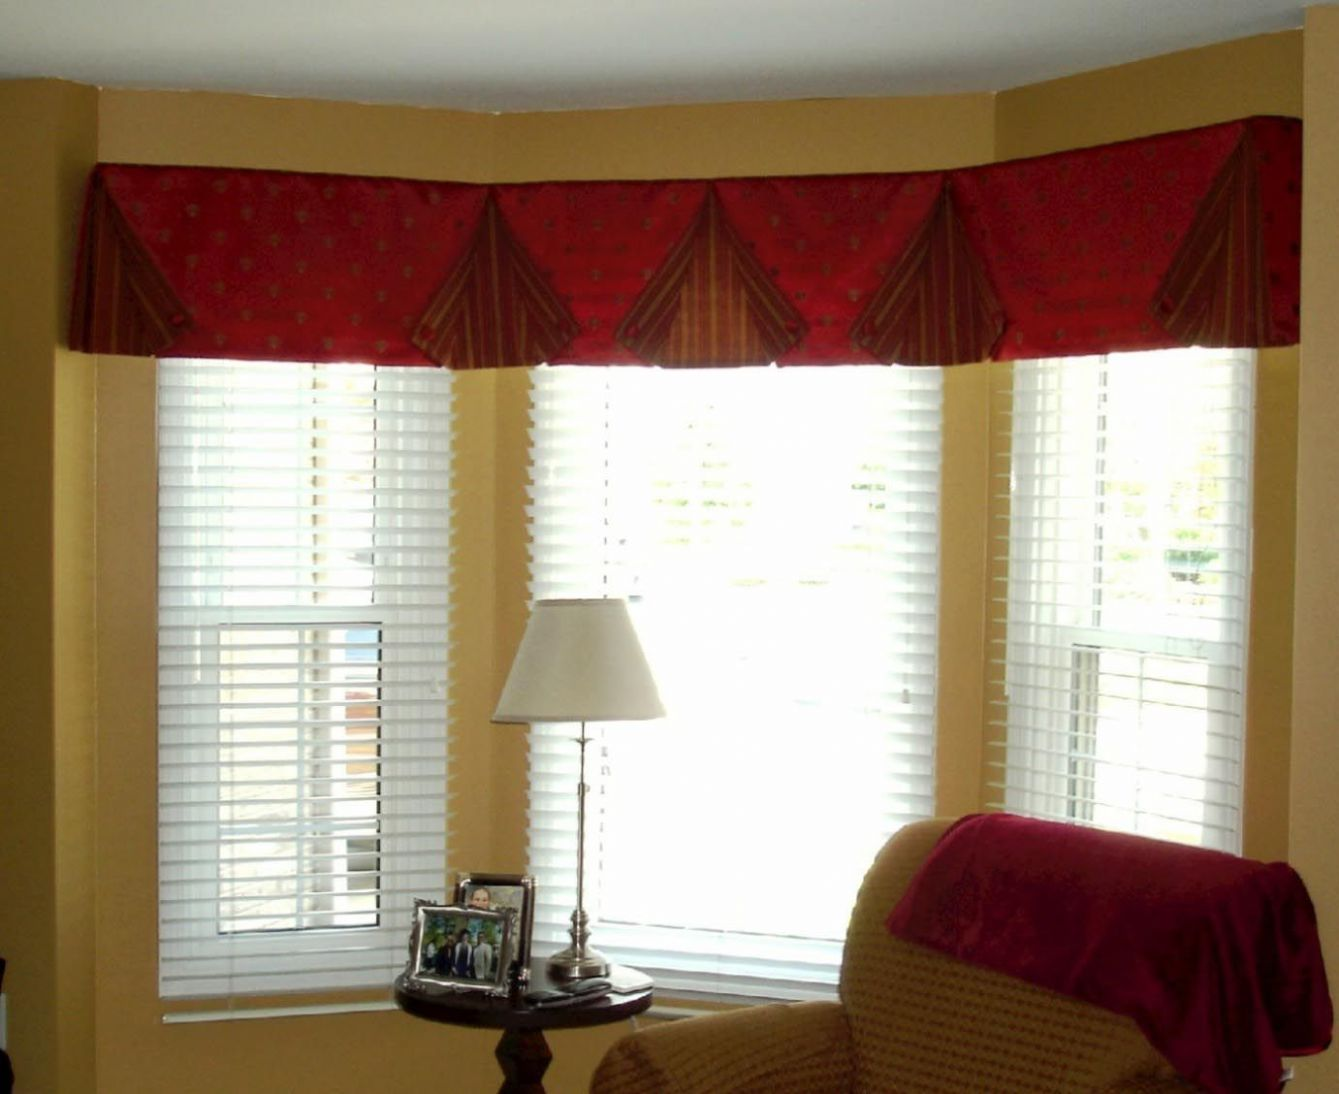 Living Room Valance Ideas (With images) | Valances for living room ..